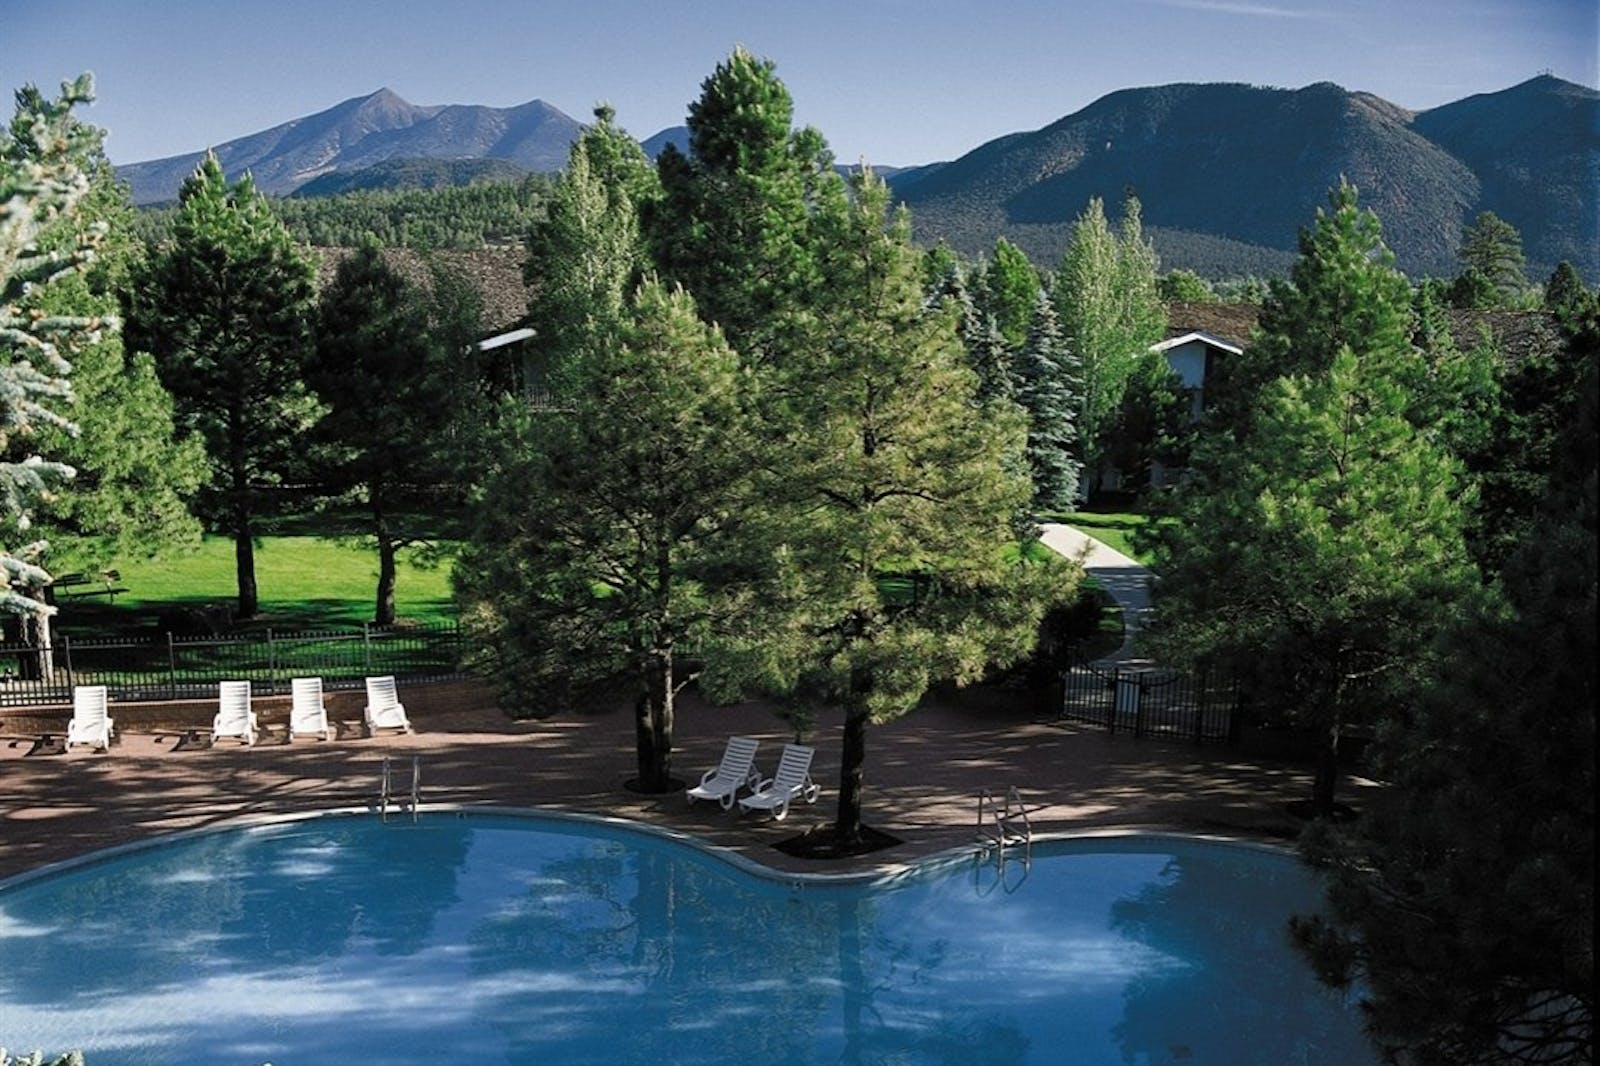 Swimming pool at Little America Hotel (Flagstaff)